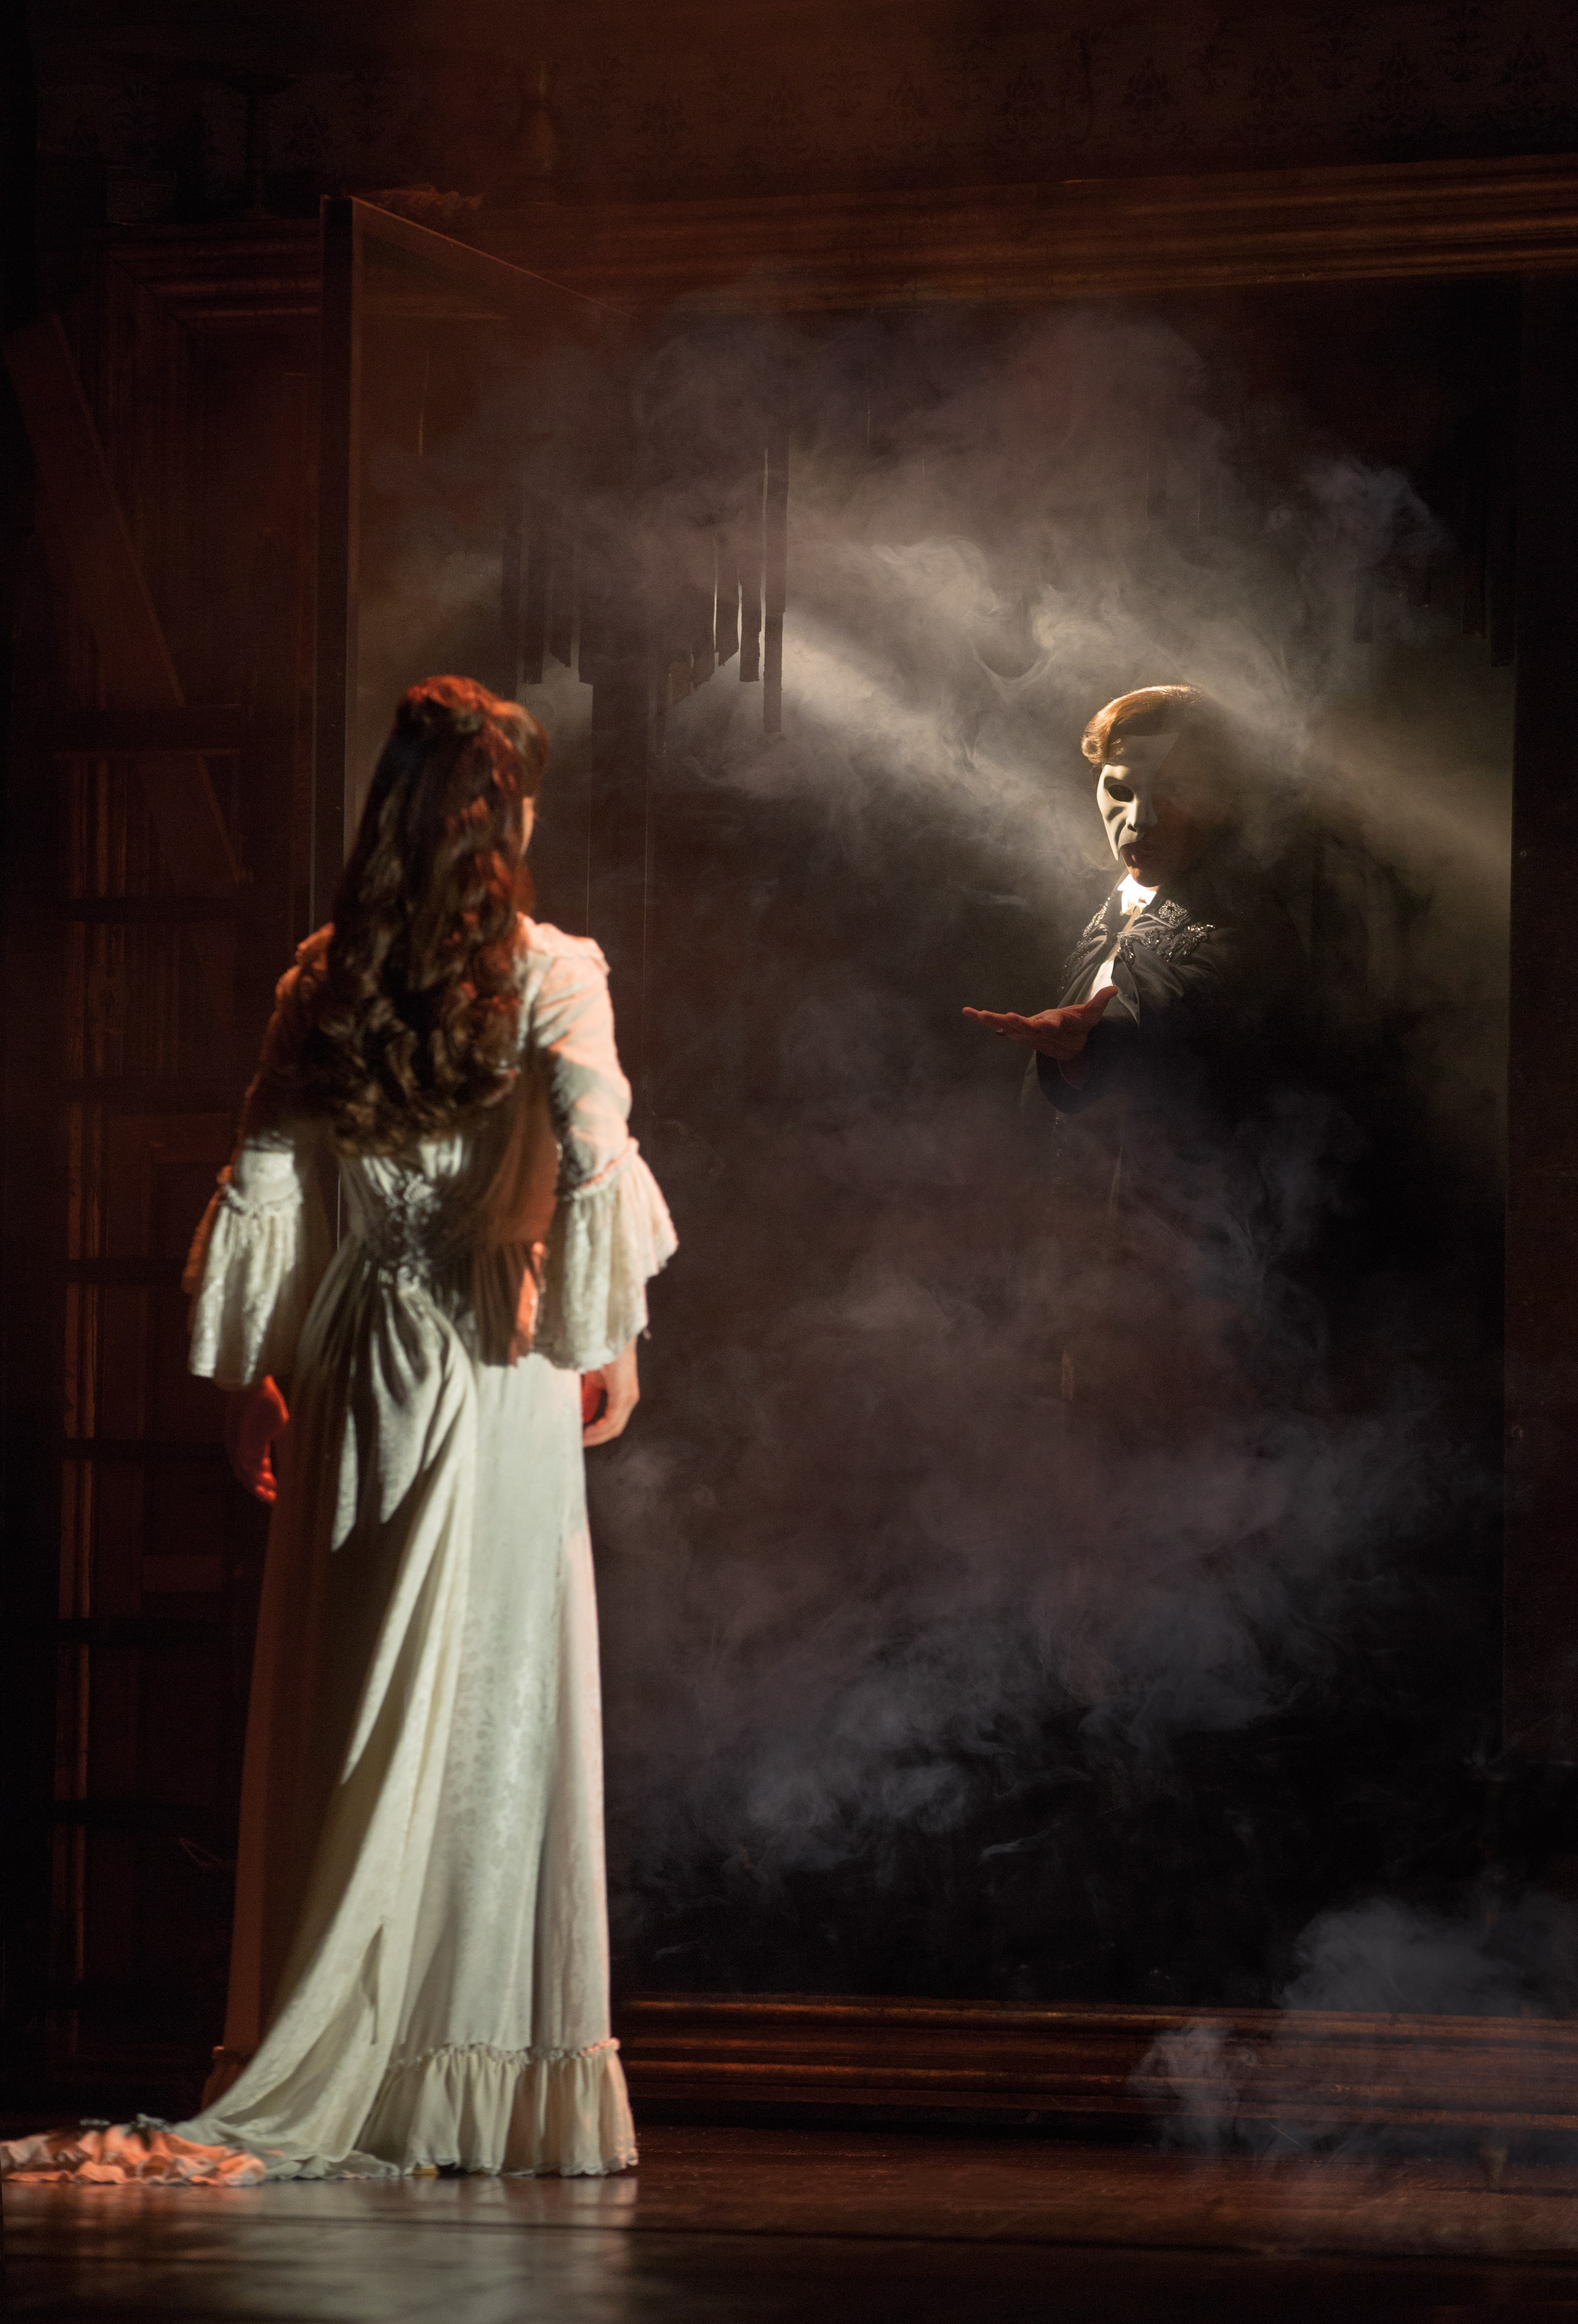 The Phantom Of The Opera Wallpapers Movie Hq The Phantom Of The Opera Pictures 4k Wallpapers 2019